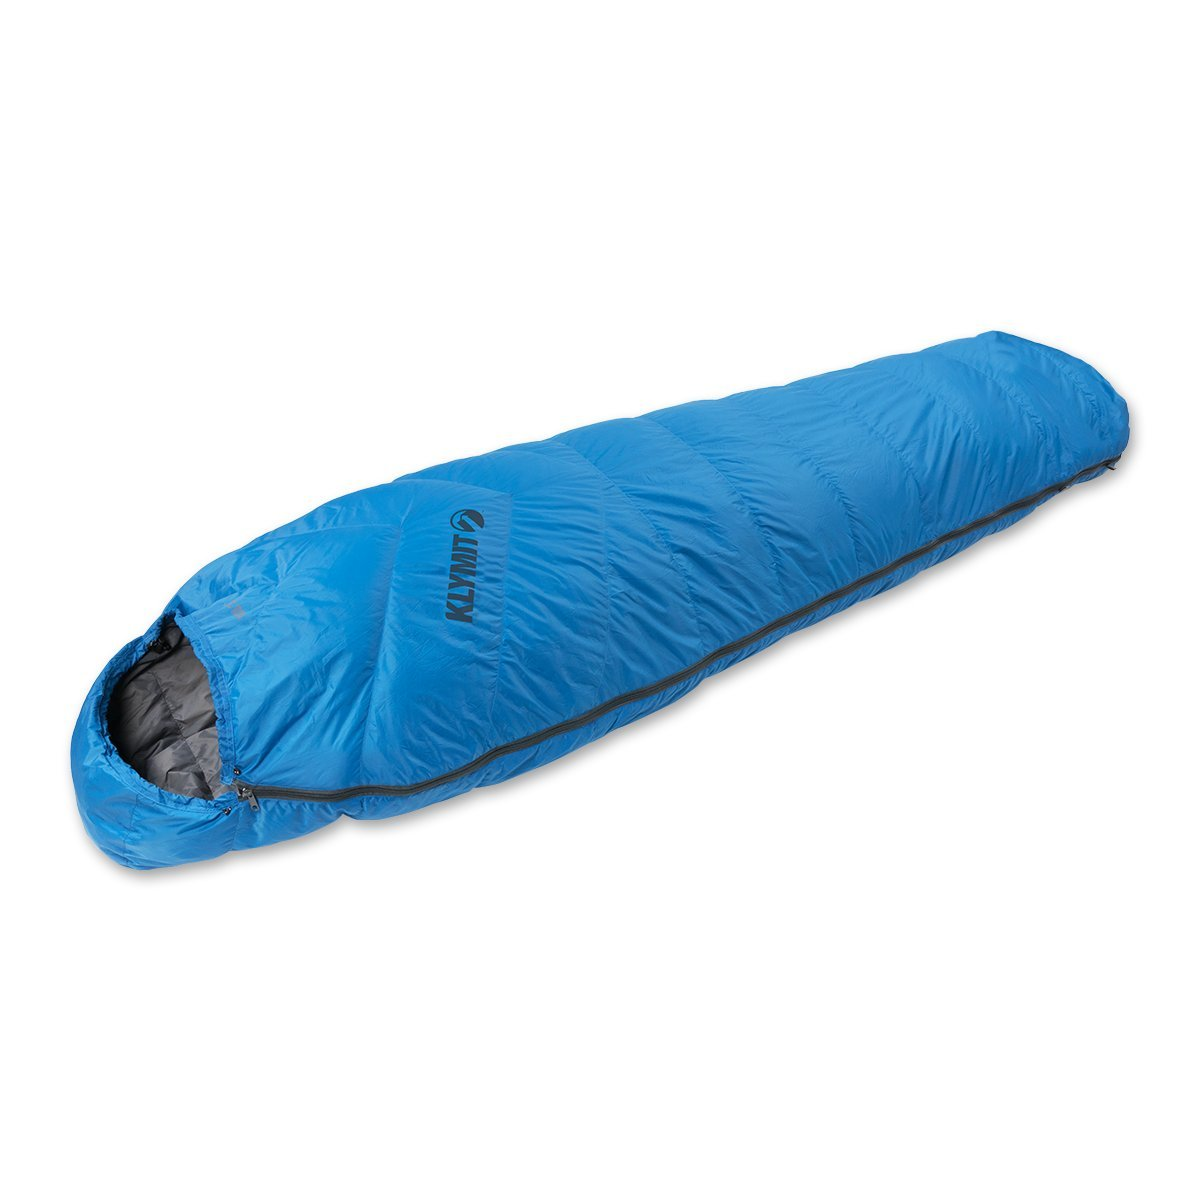 KLYMIT KSB 35 Degree Down Sleeping Bag (New for 2018), Blue by Klymit (Image #1)